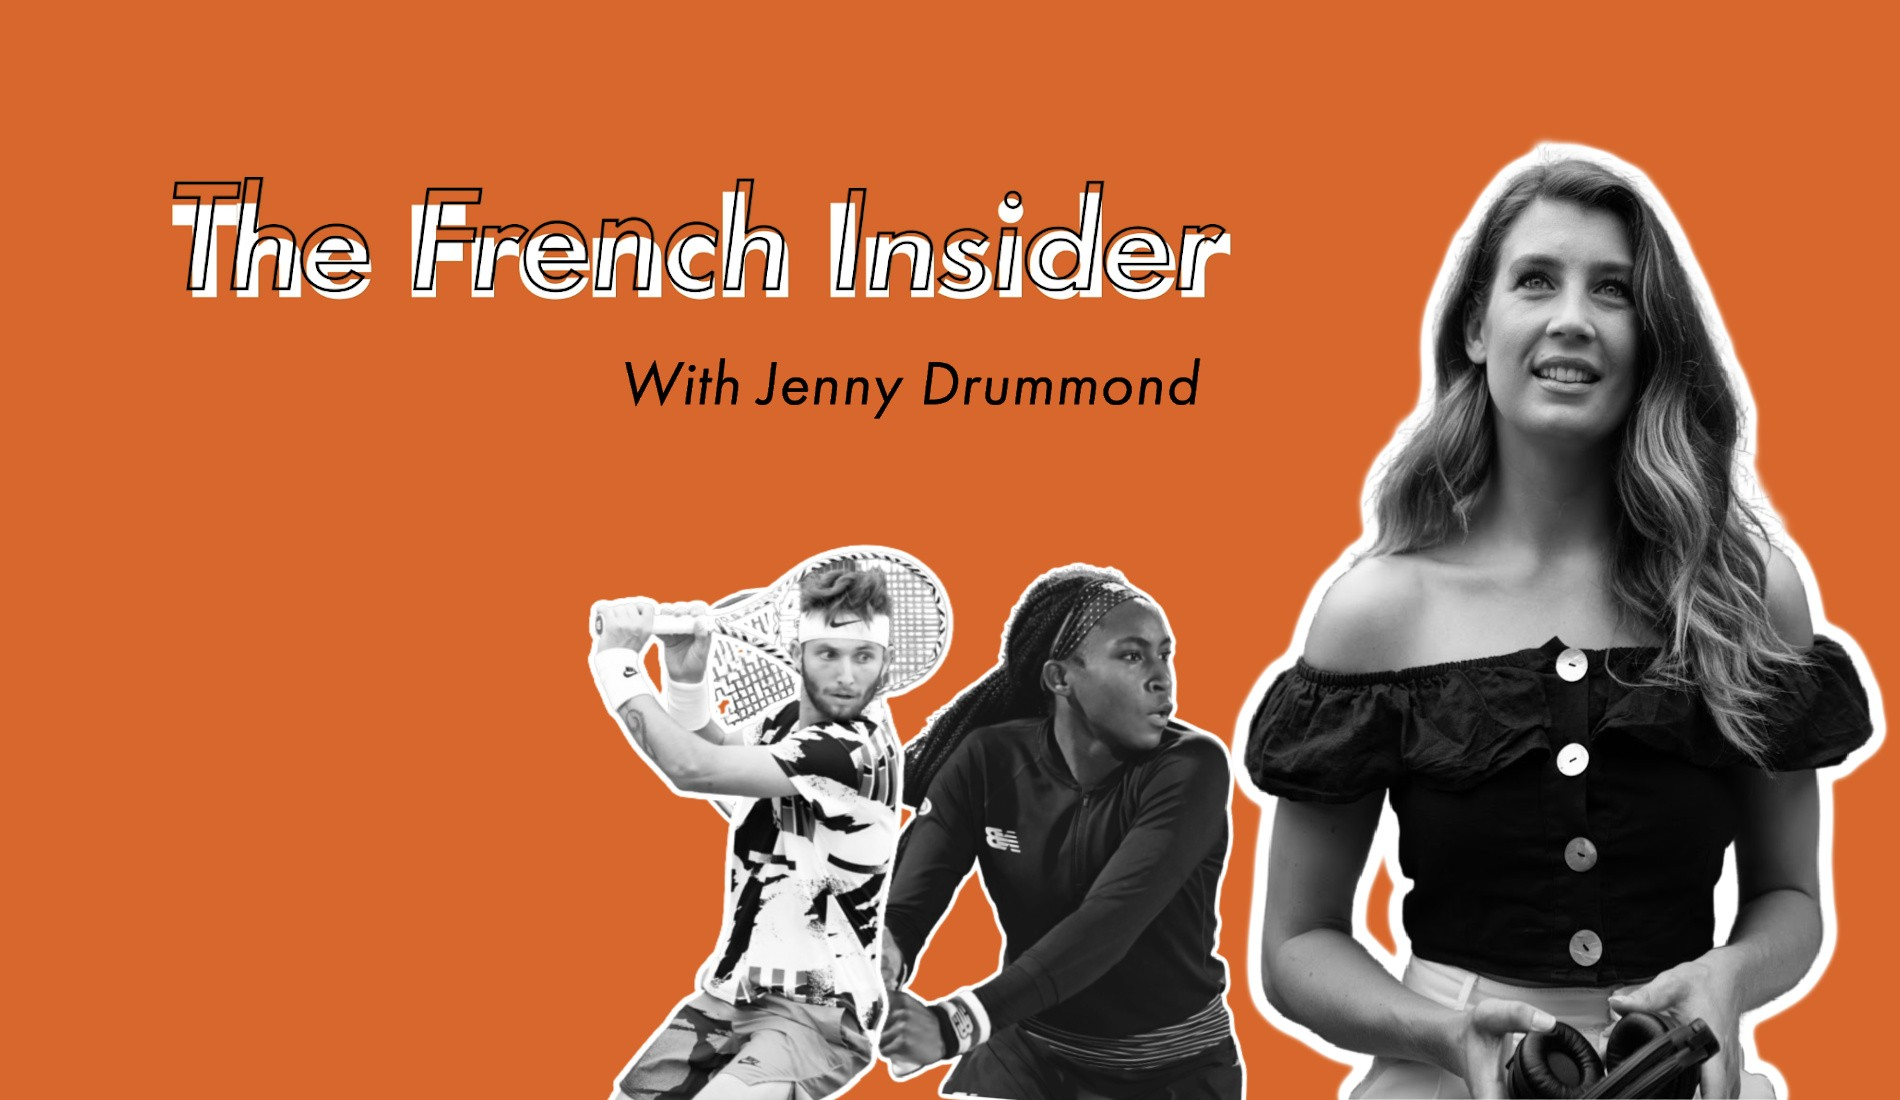 The French Insider #2